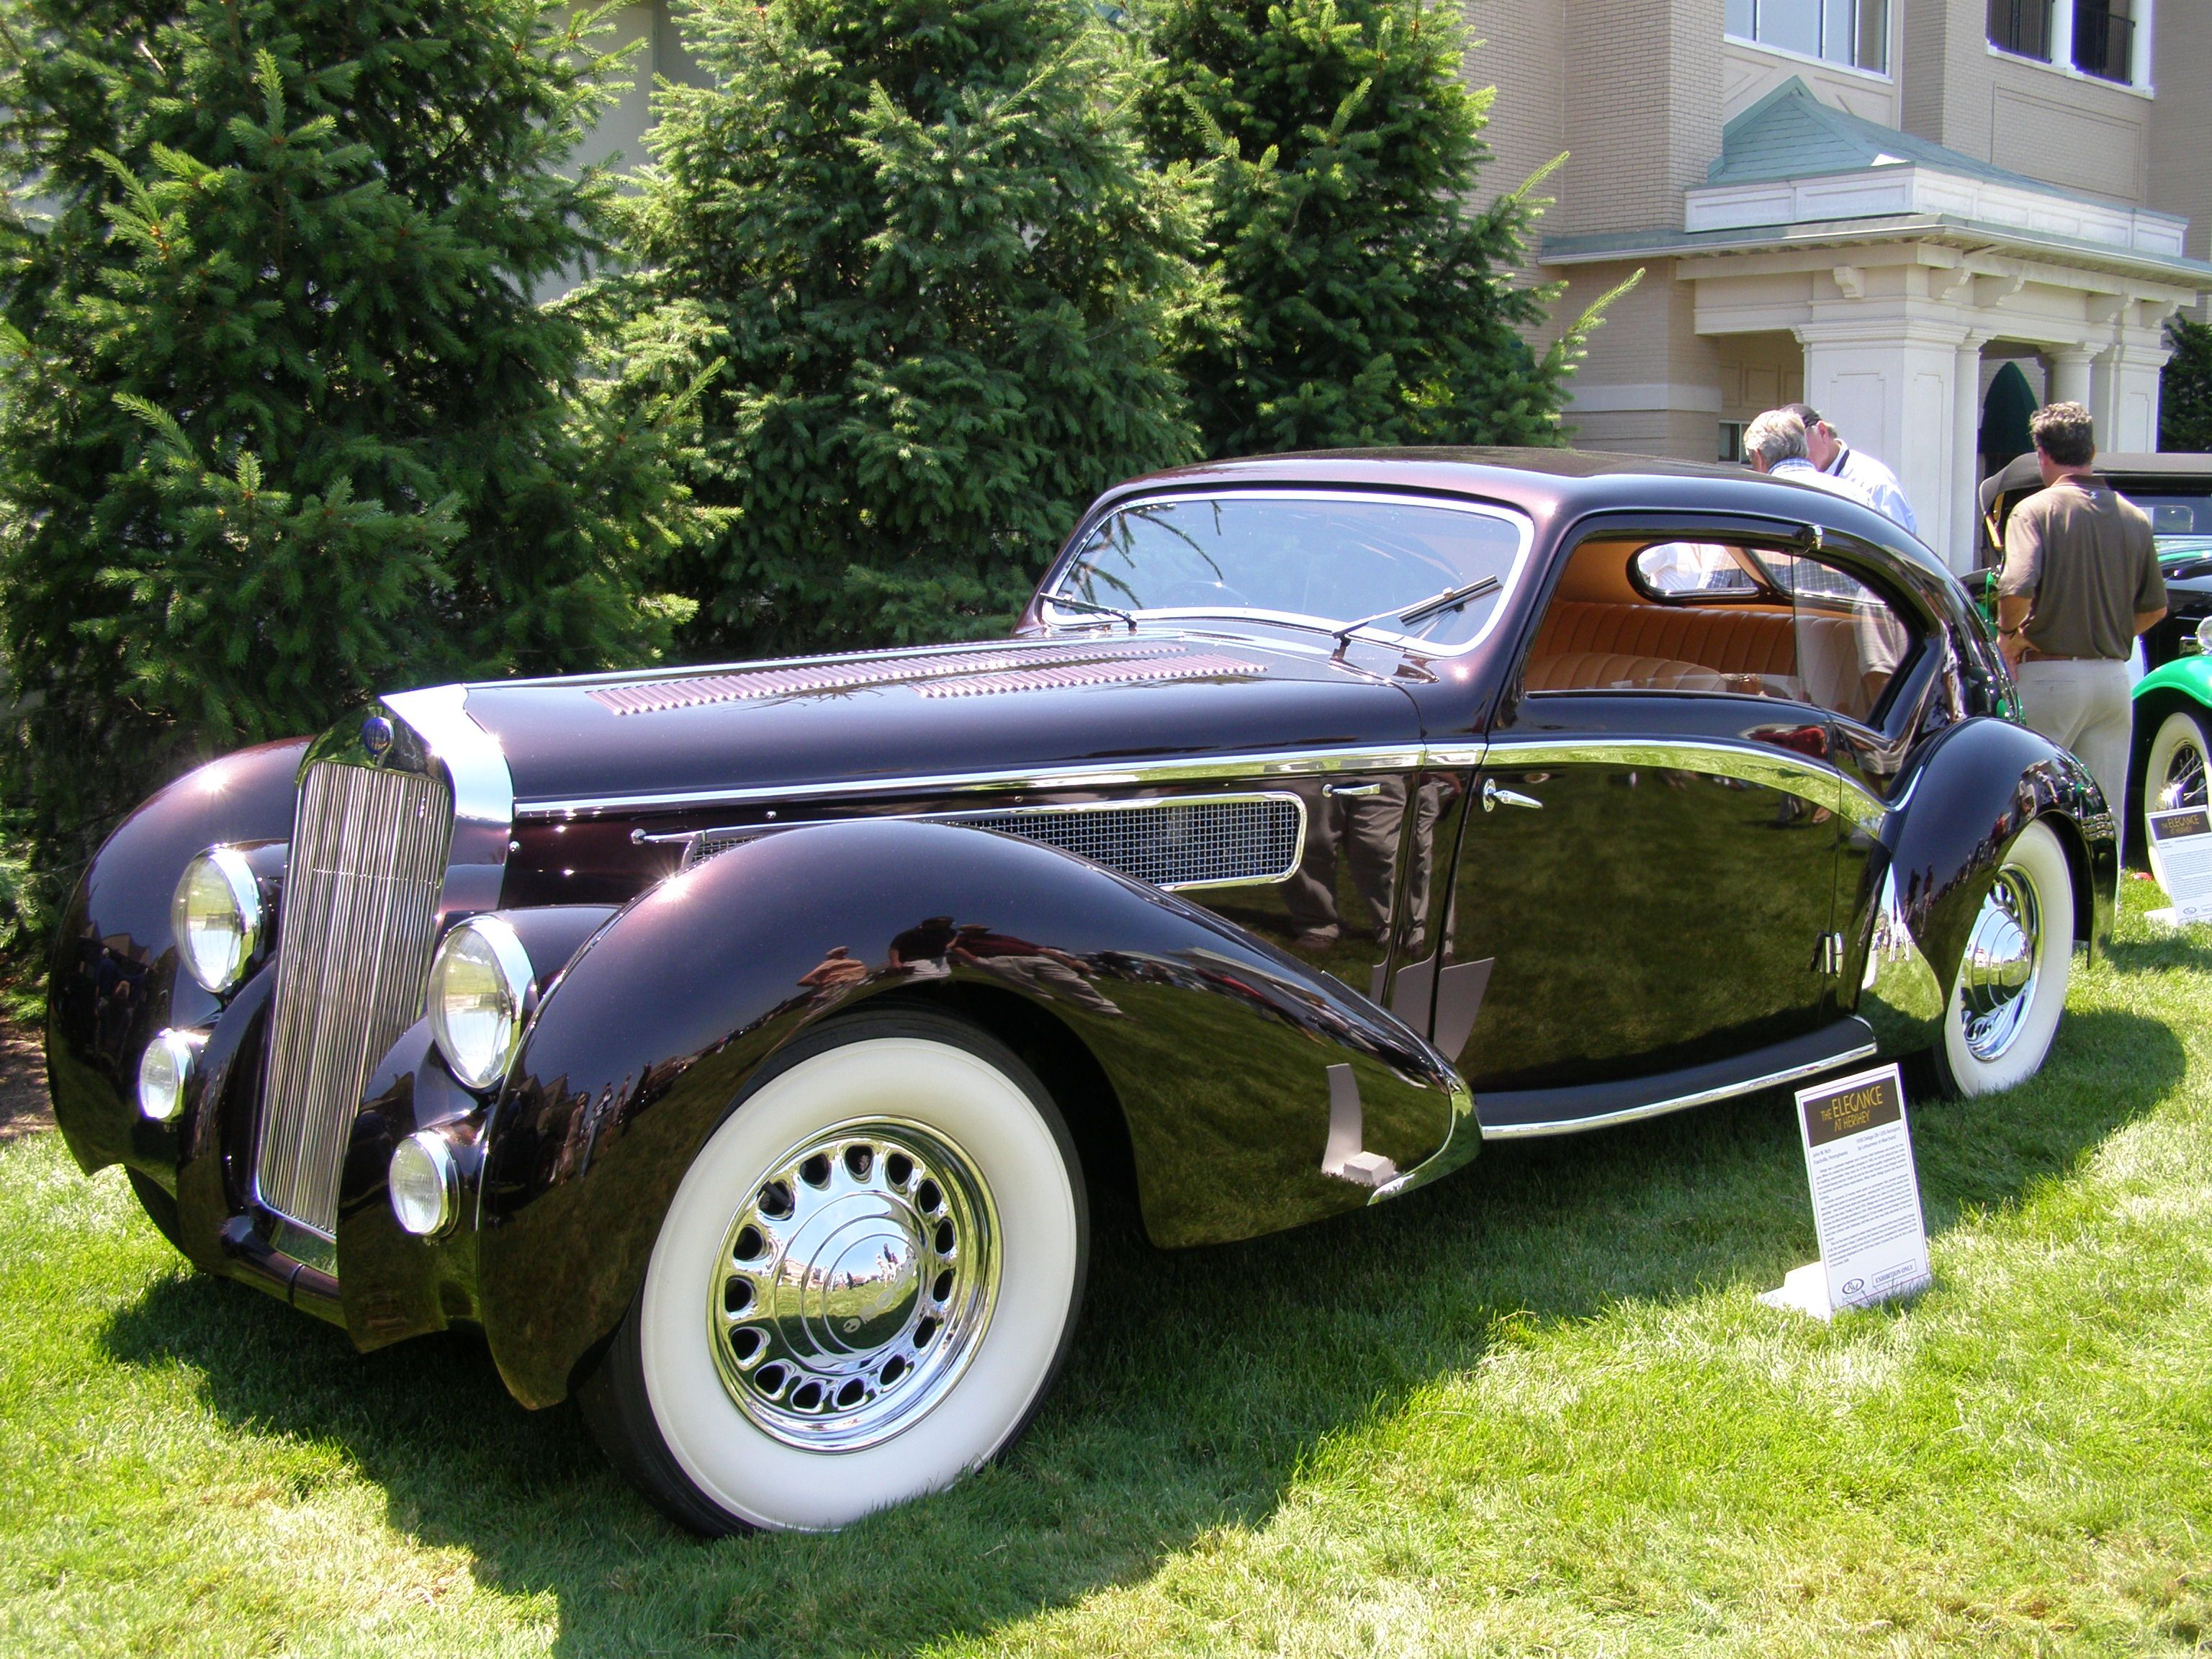 Delage Aerosport Coup Picture Take At The Elegance At Hershey - Hershey antique car show